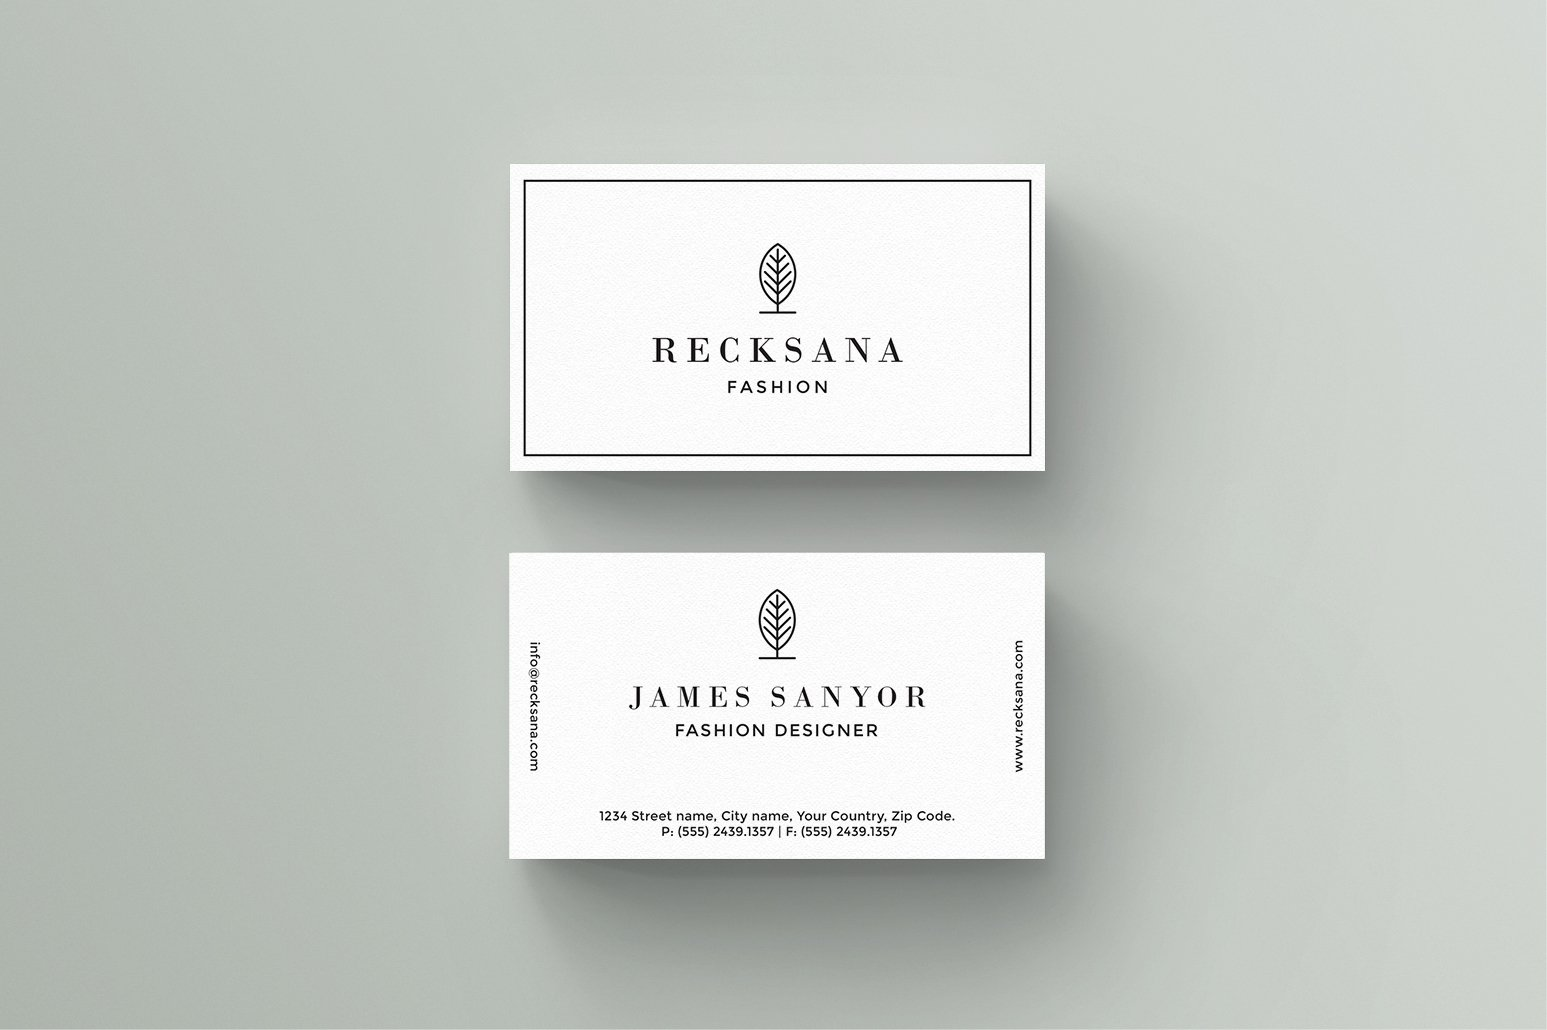 Recksana Business Card Template Business Card Templates - It business card templates